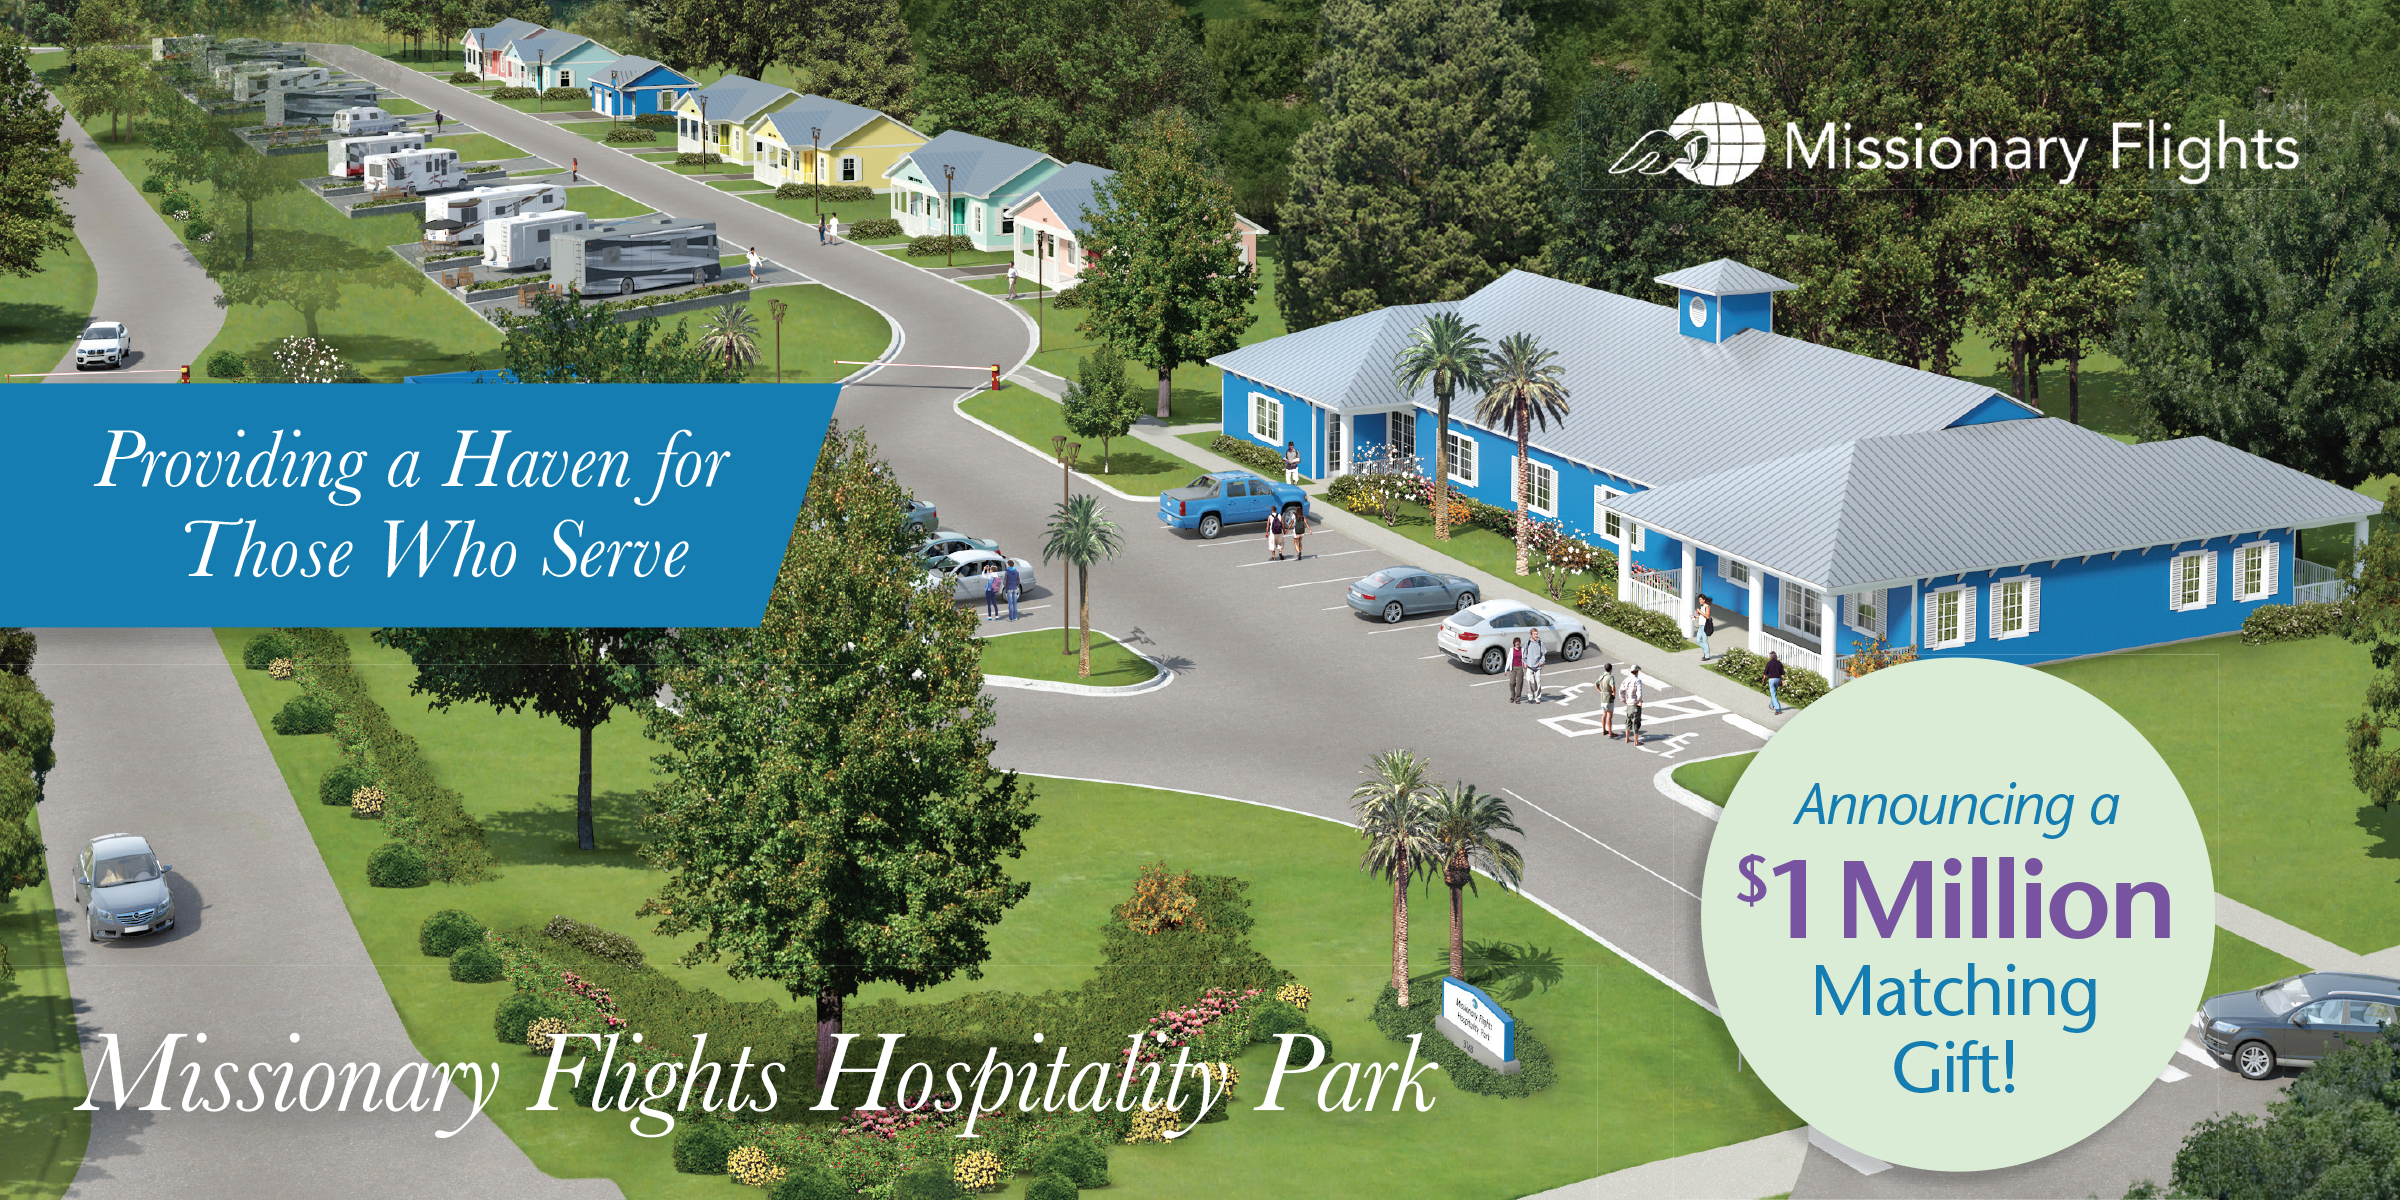 For more information on the Hospitality Park, please  click here .